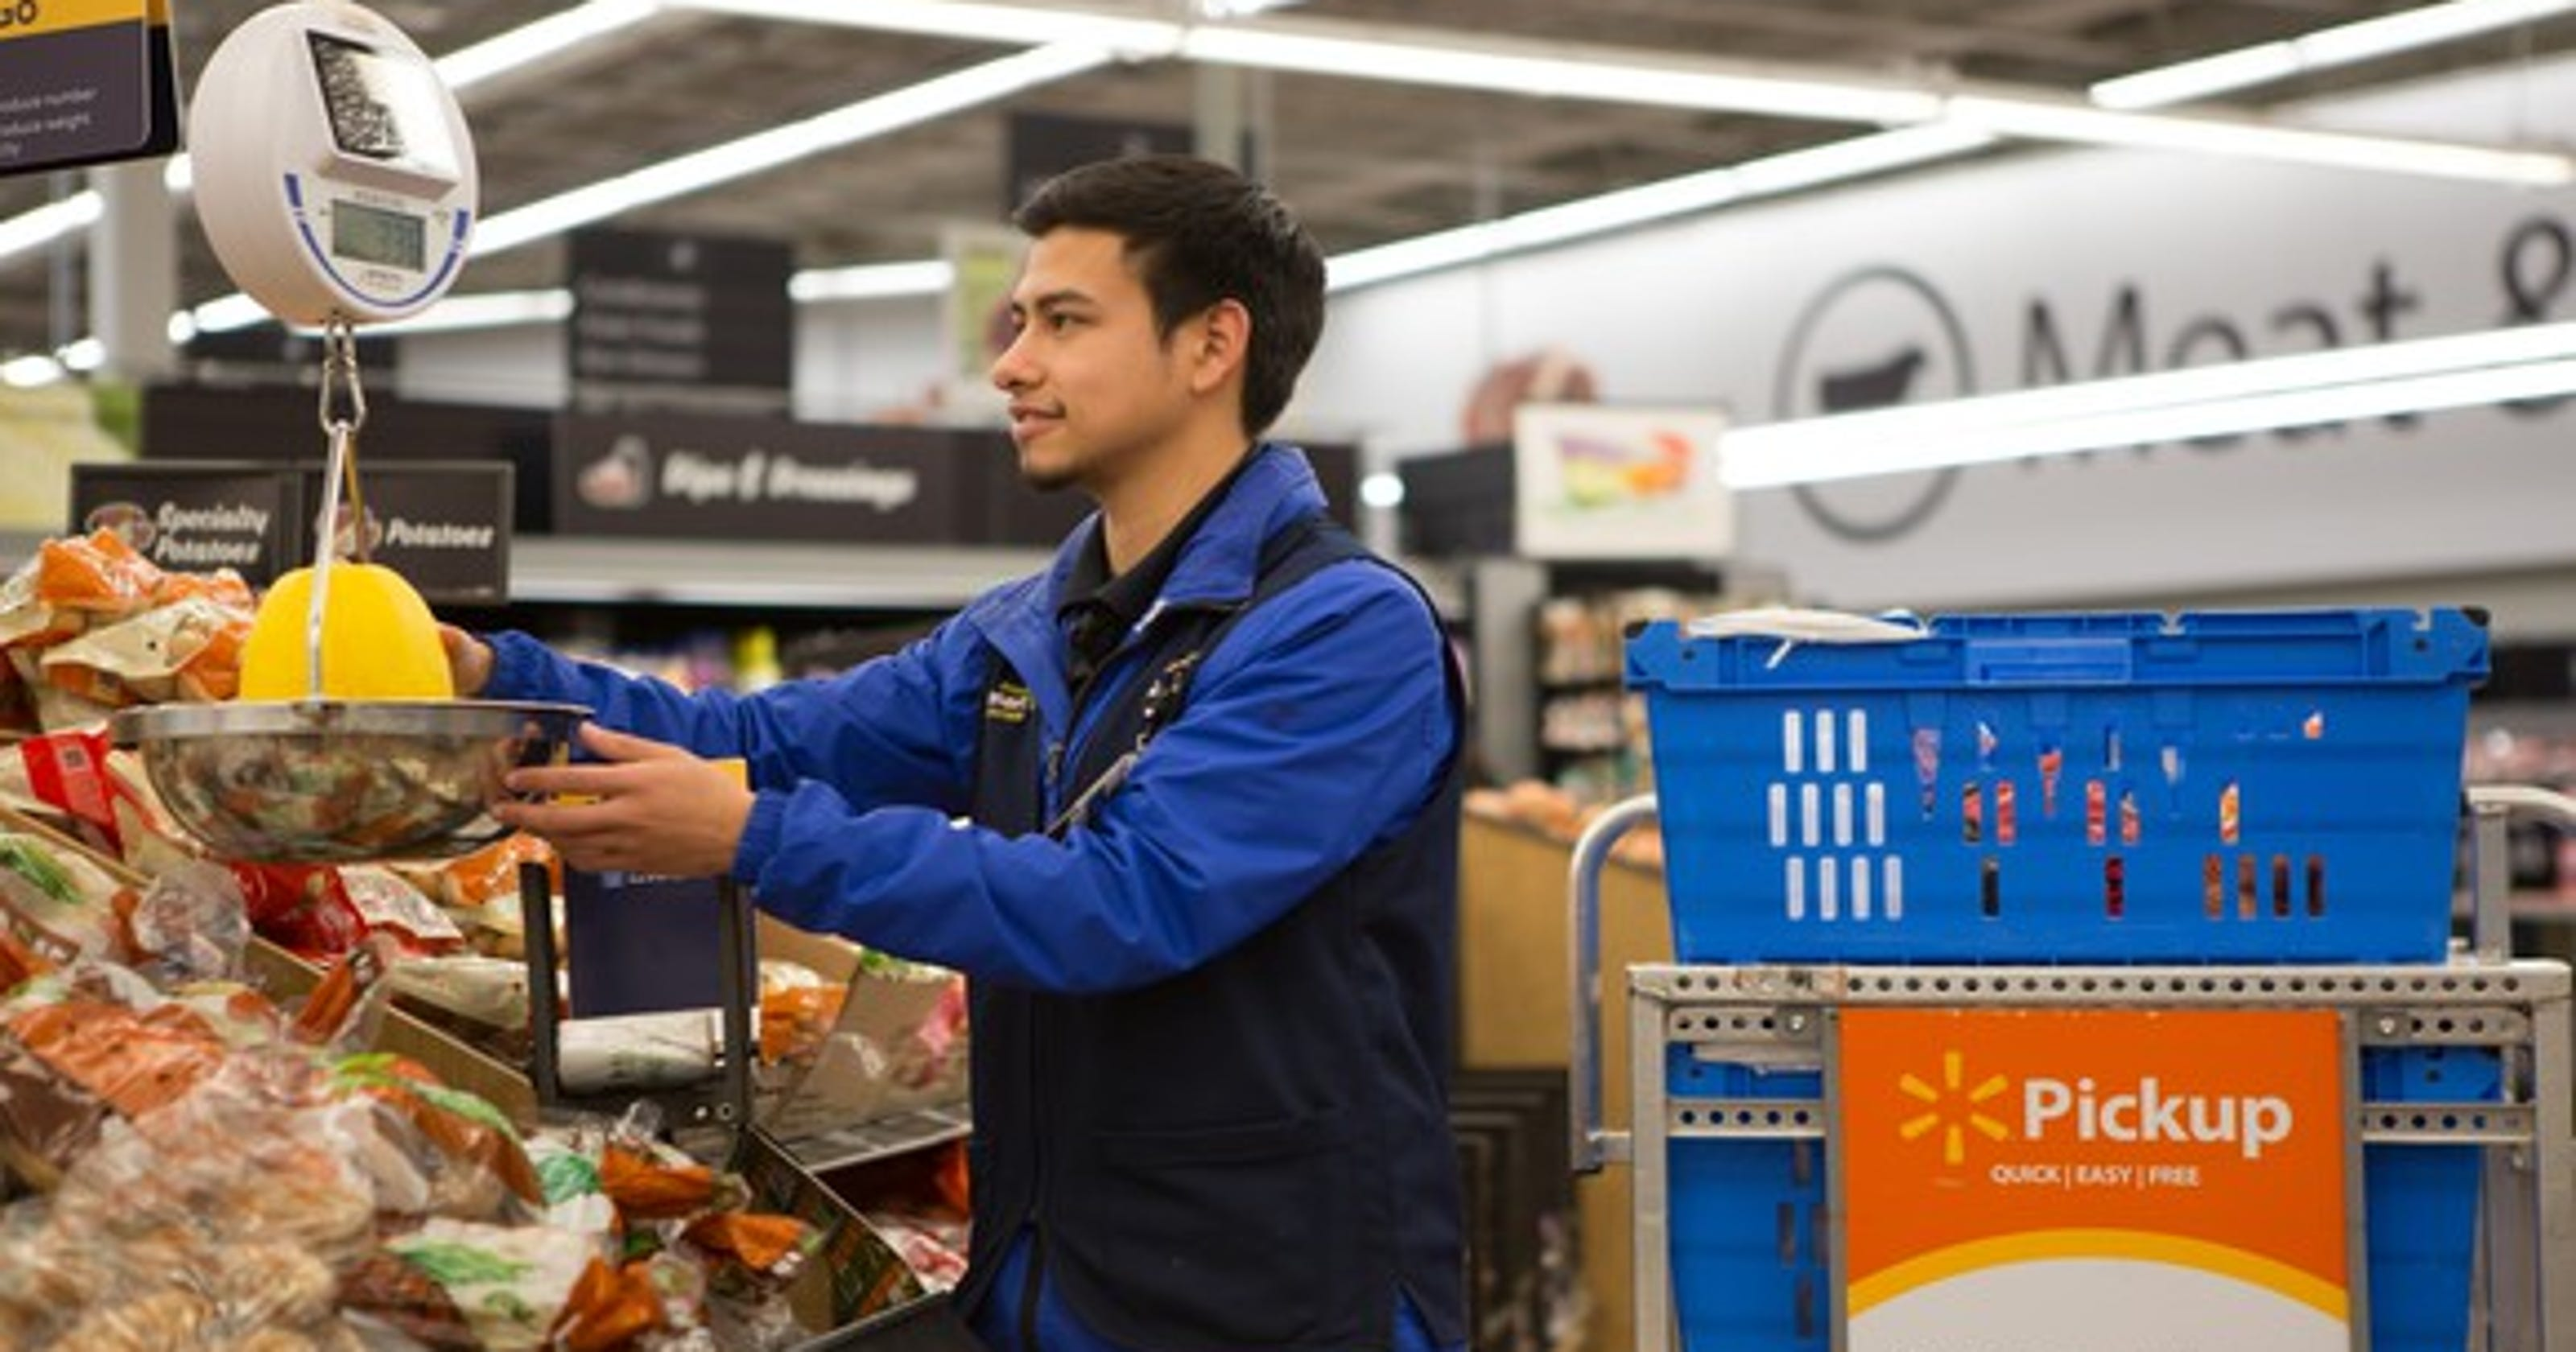 Walmart Dress Code Relaxed For Some Workers Blue Jeans Allowed